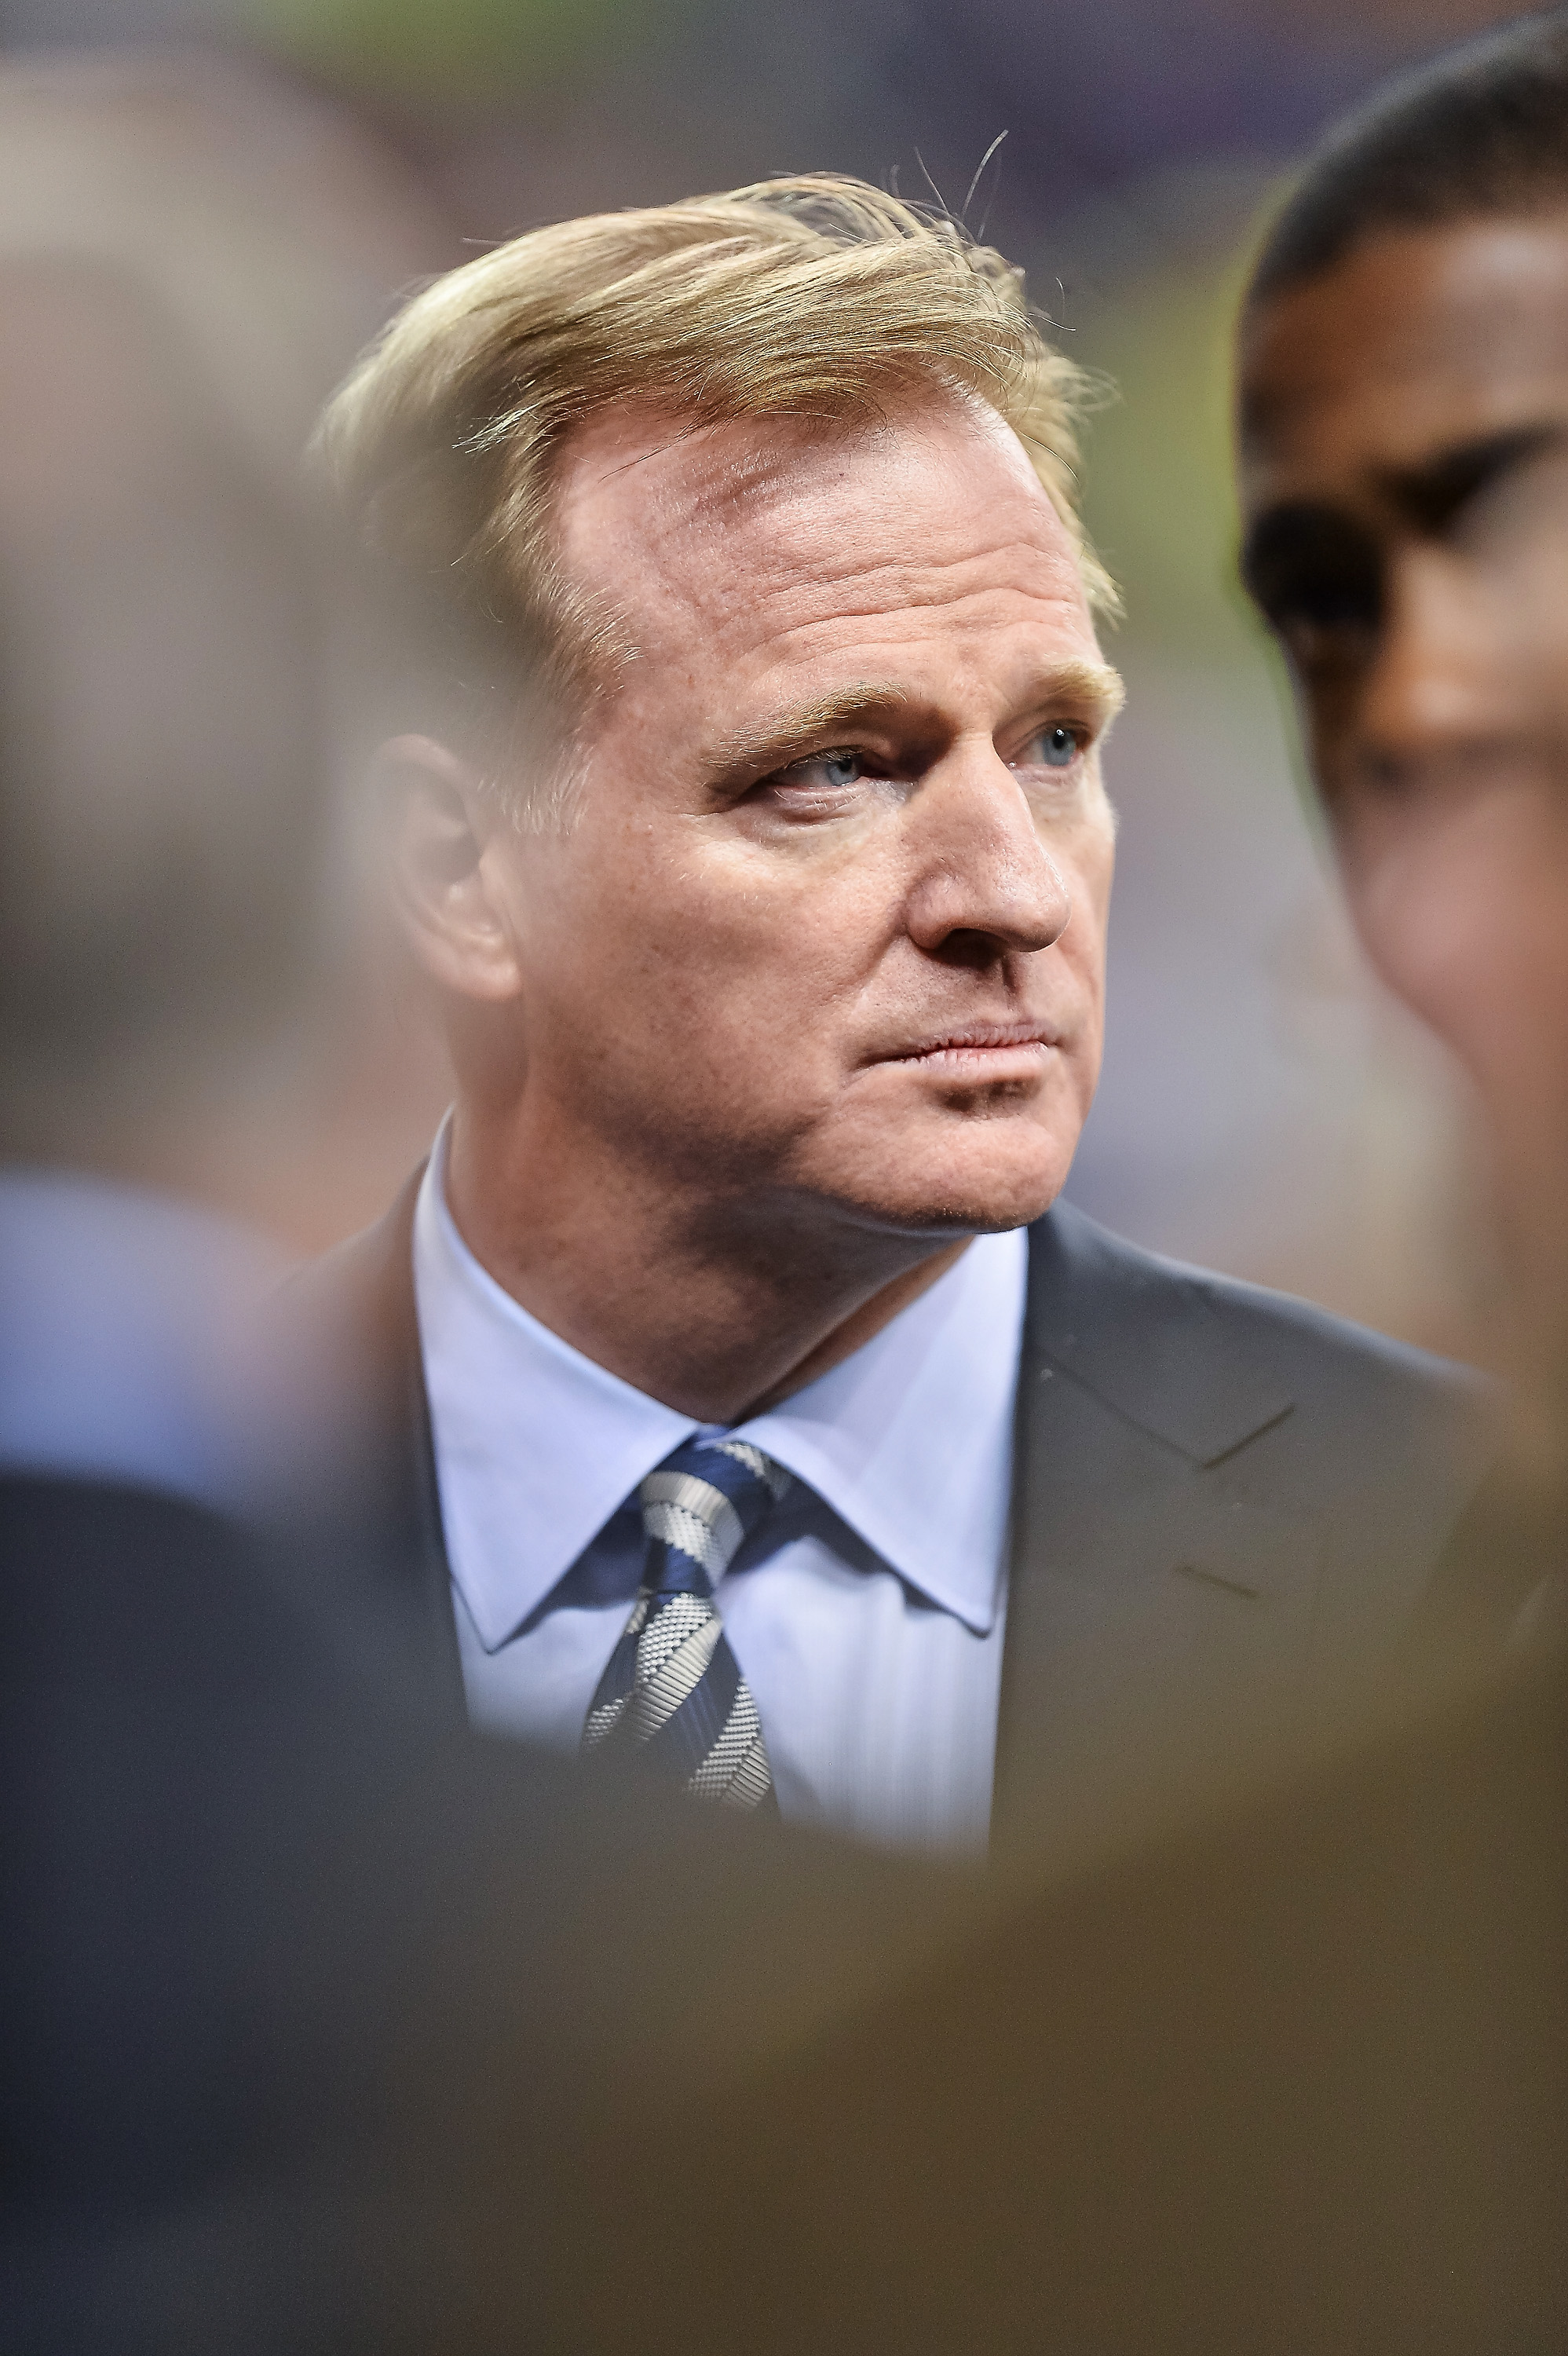 NFL Commissioner Roger Goodell meets fans on the field before a game between the New York Jets and Buffalo Bills at Ford Field on November 24, 2014 in Detroit, Michigan.